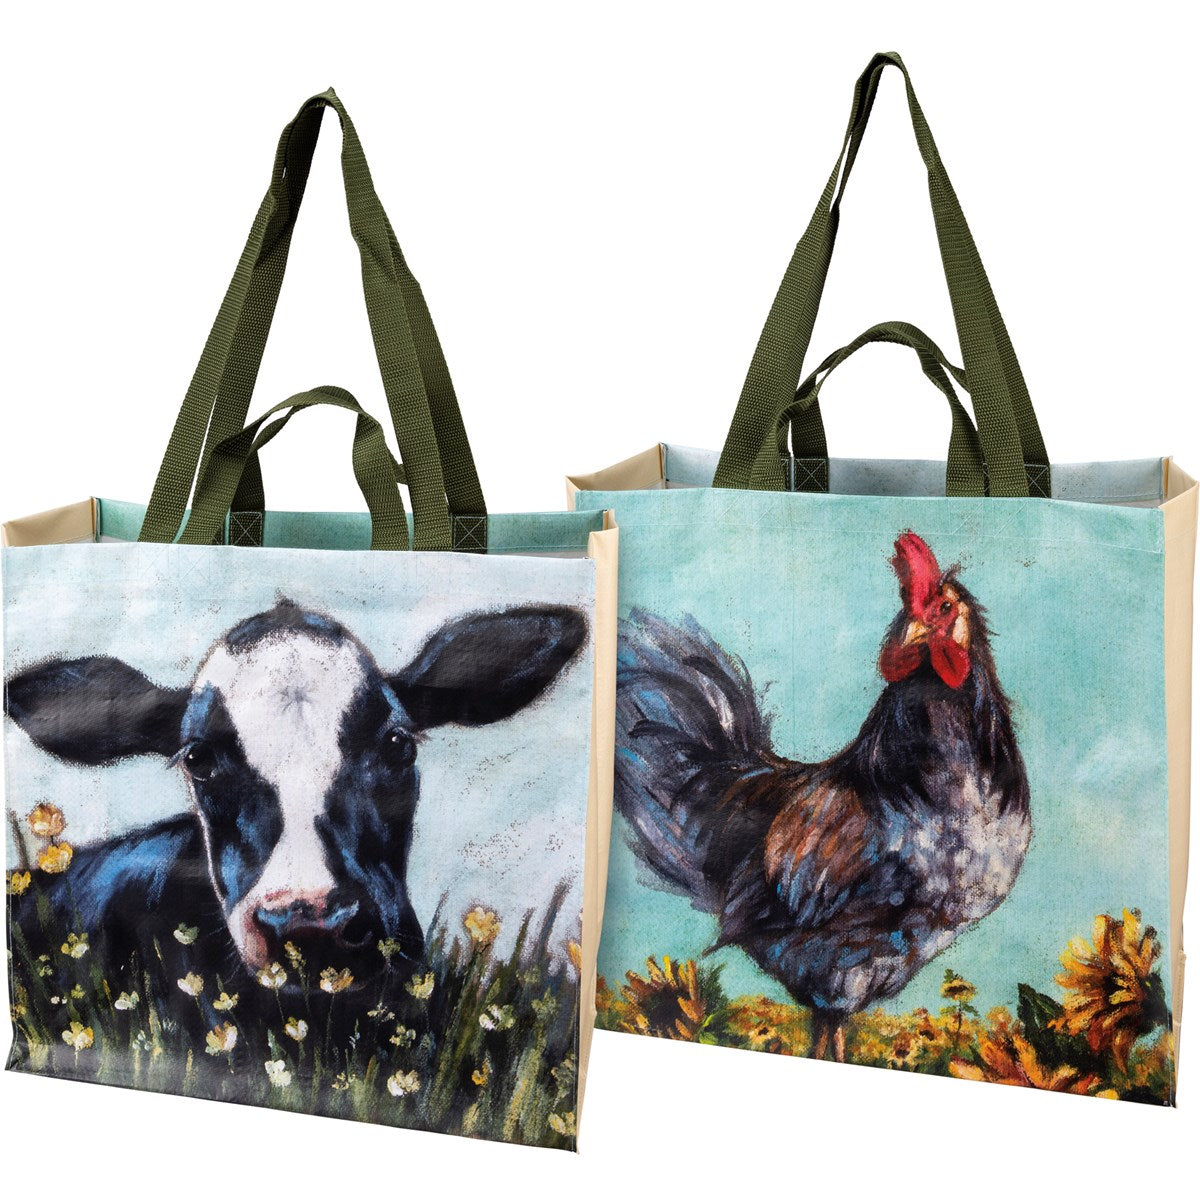 Double Sided Market Tote - Rooster & Cow